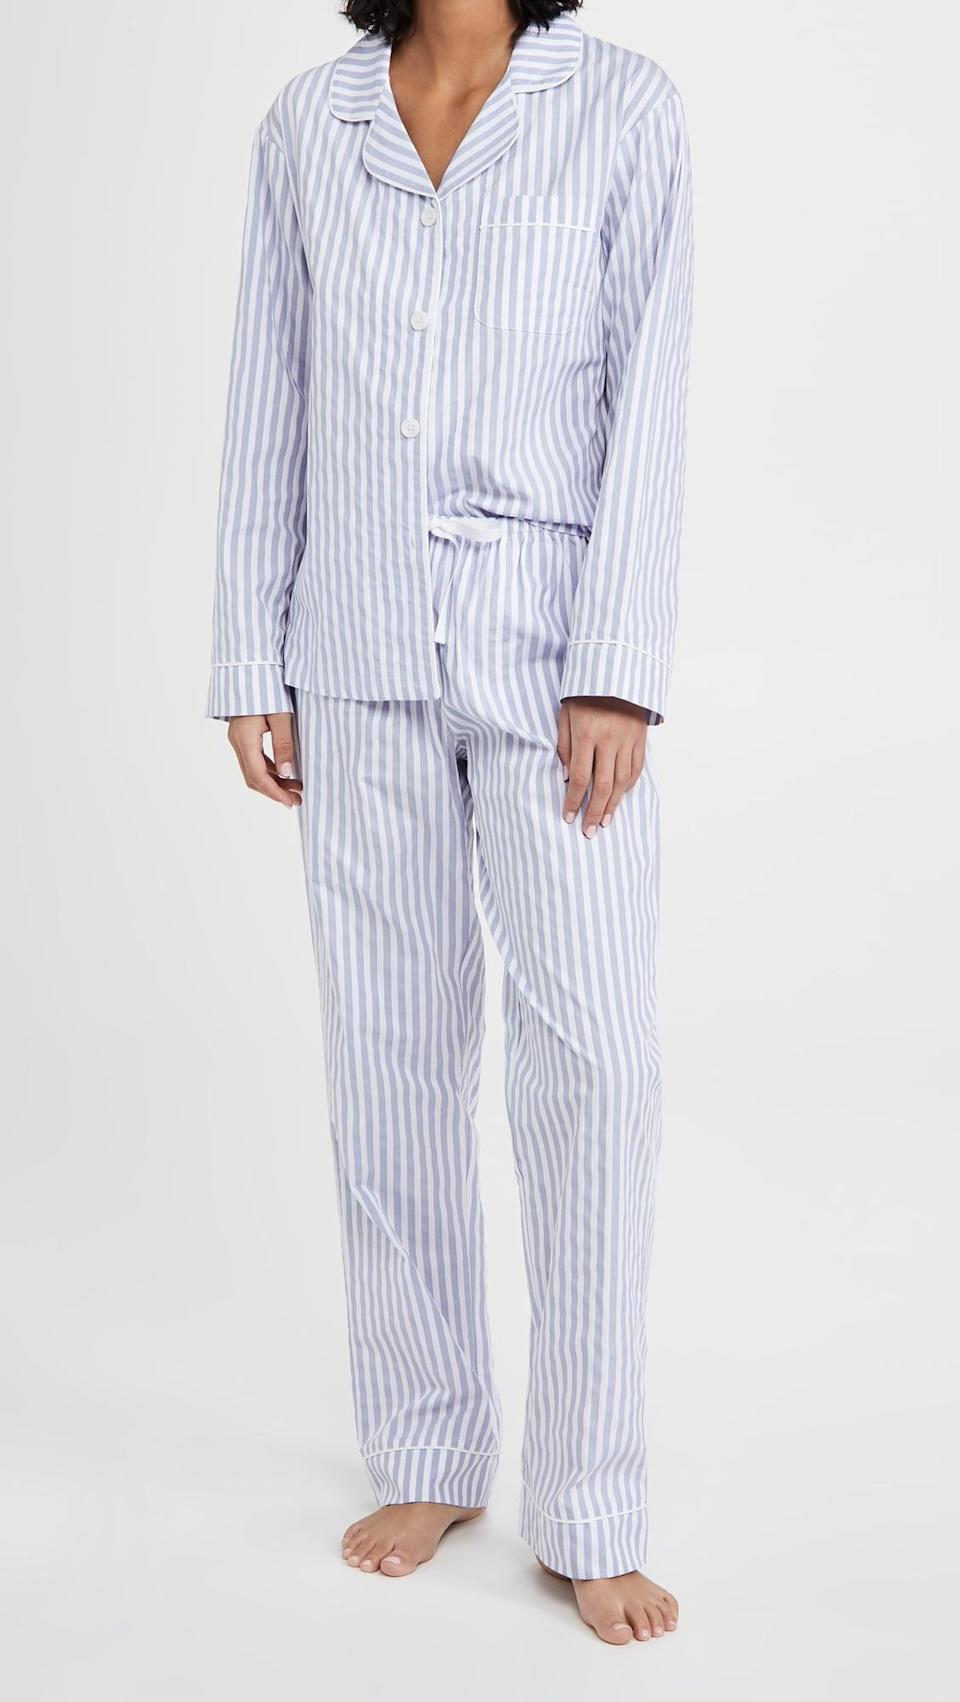 <p>When we think of pajama sets, we think of a striped set like this. This <span>BedHead Pajamas Classic Stripe Pajama Set</span> ($120) is a classic.</p>